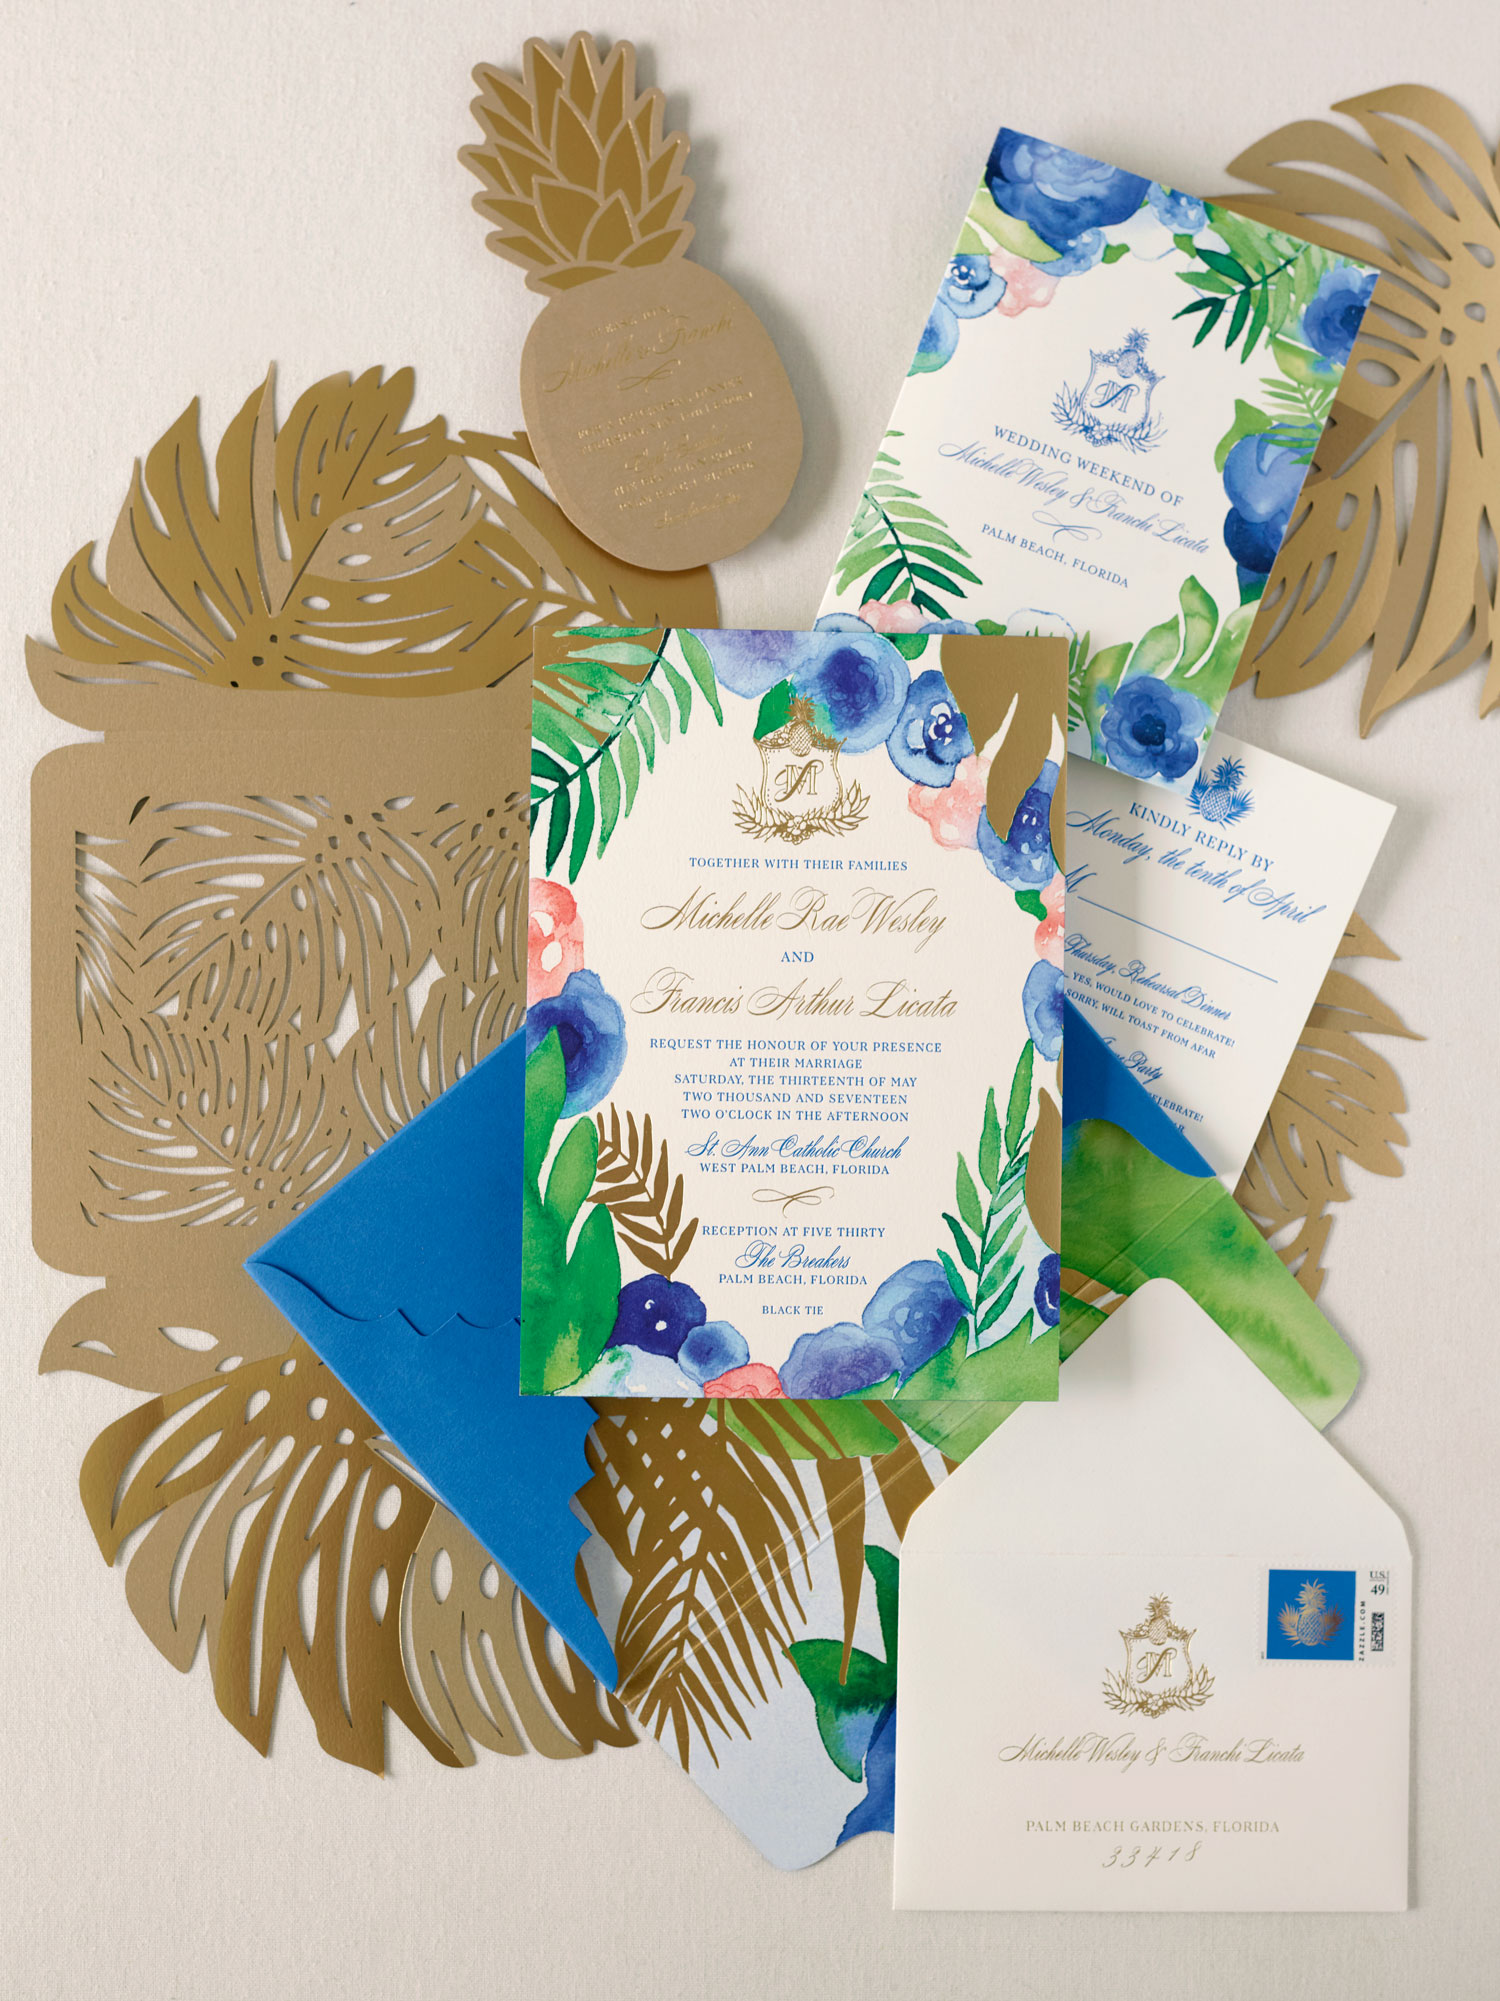 Tropical wedding invitation by ceci new york posh parties wedding at the breakers inside weddings spring 2018 issue